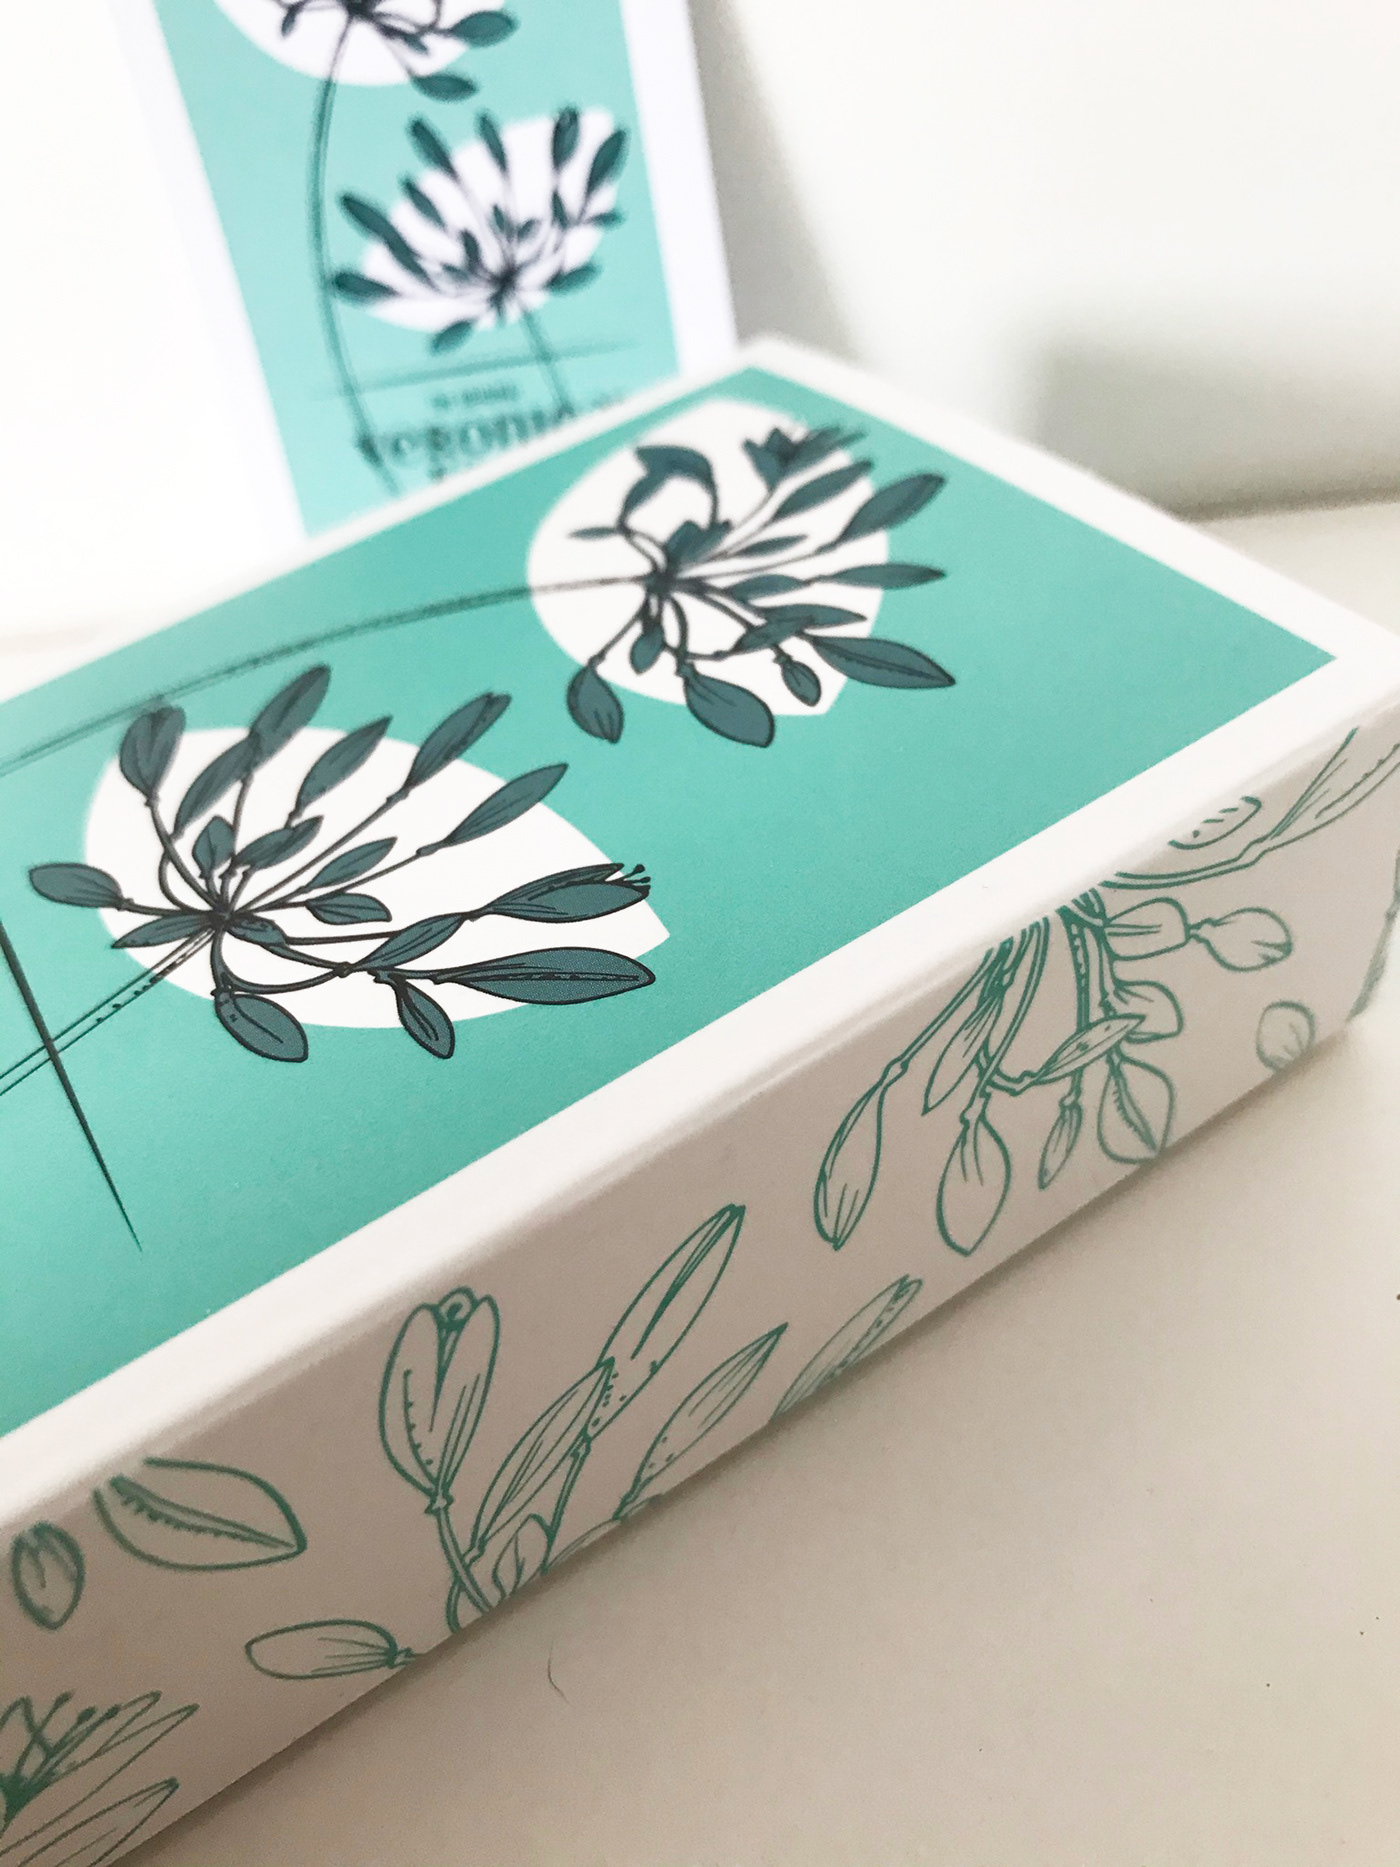 agapanthus branding  food and drink Fudge Isles of Scilly